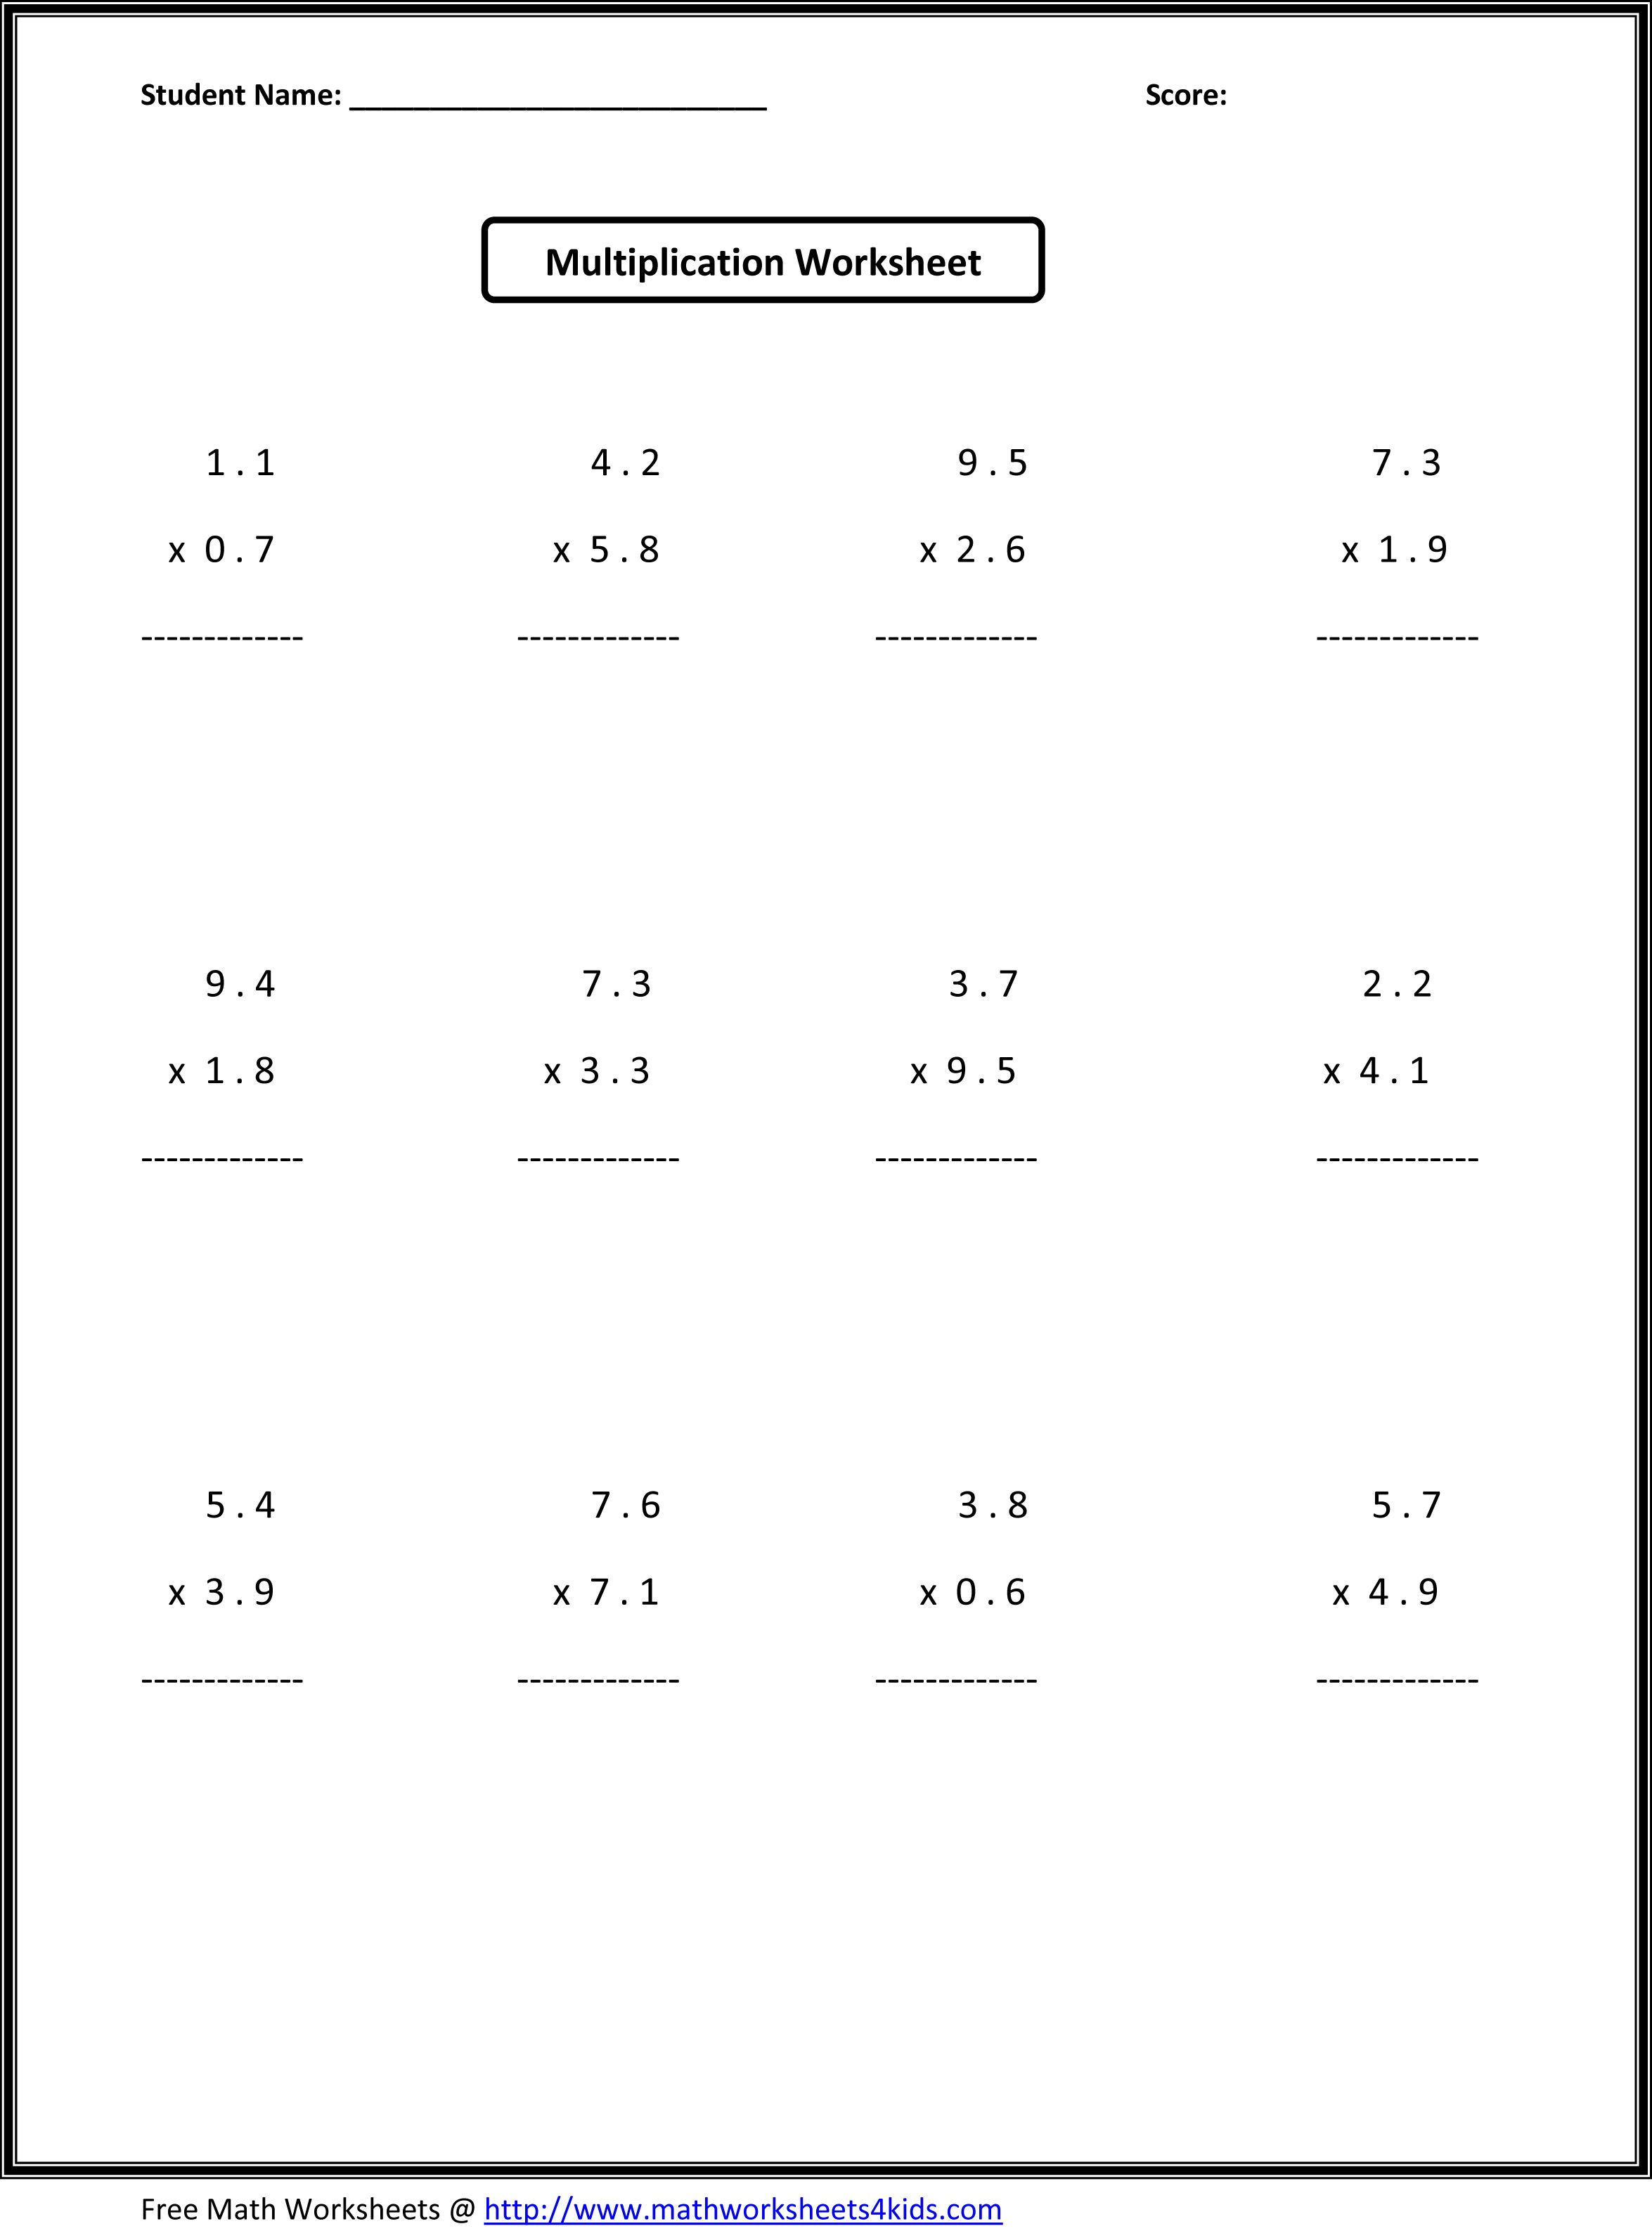 Printables 6th Grade Math Worksheets Decimals 1000 images about math on pinterest activities printable worksheets and algebra worksheets